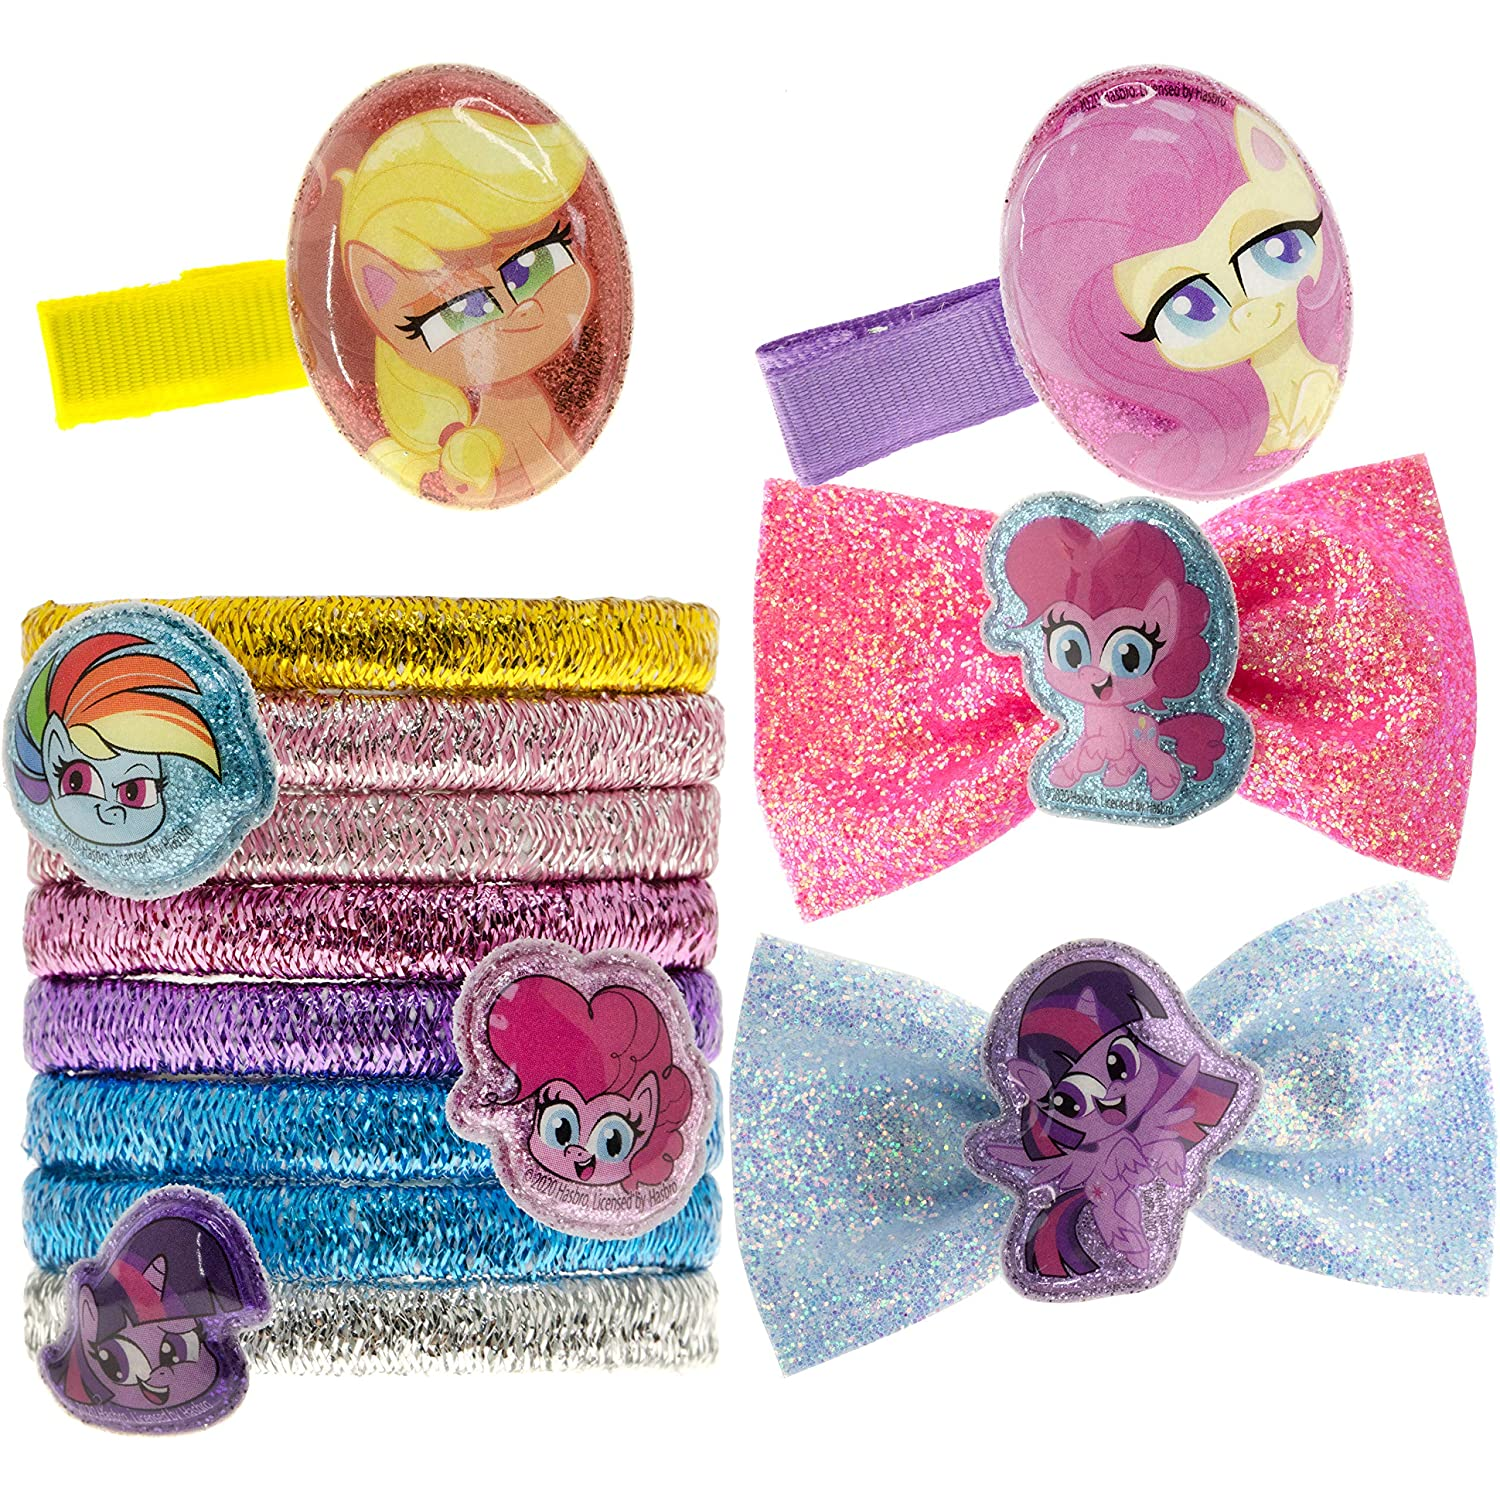 MLP: PL Miniature Hair Accessory Backpack 3